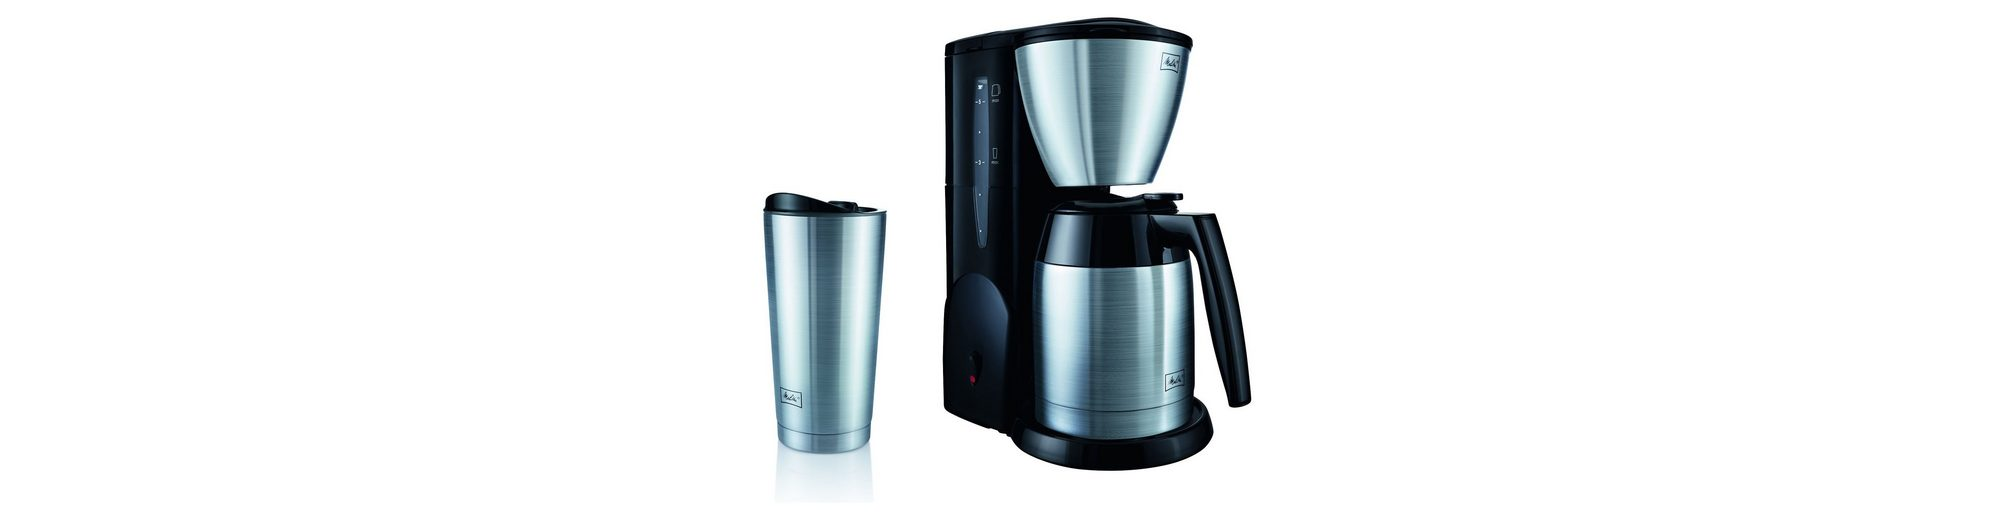 Melitta Filterkaffeemaschine Single5® Therm und Becher M728, 600 Watt